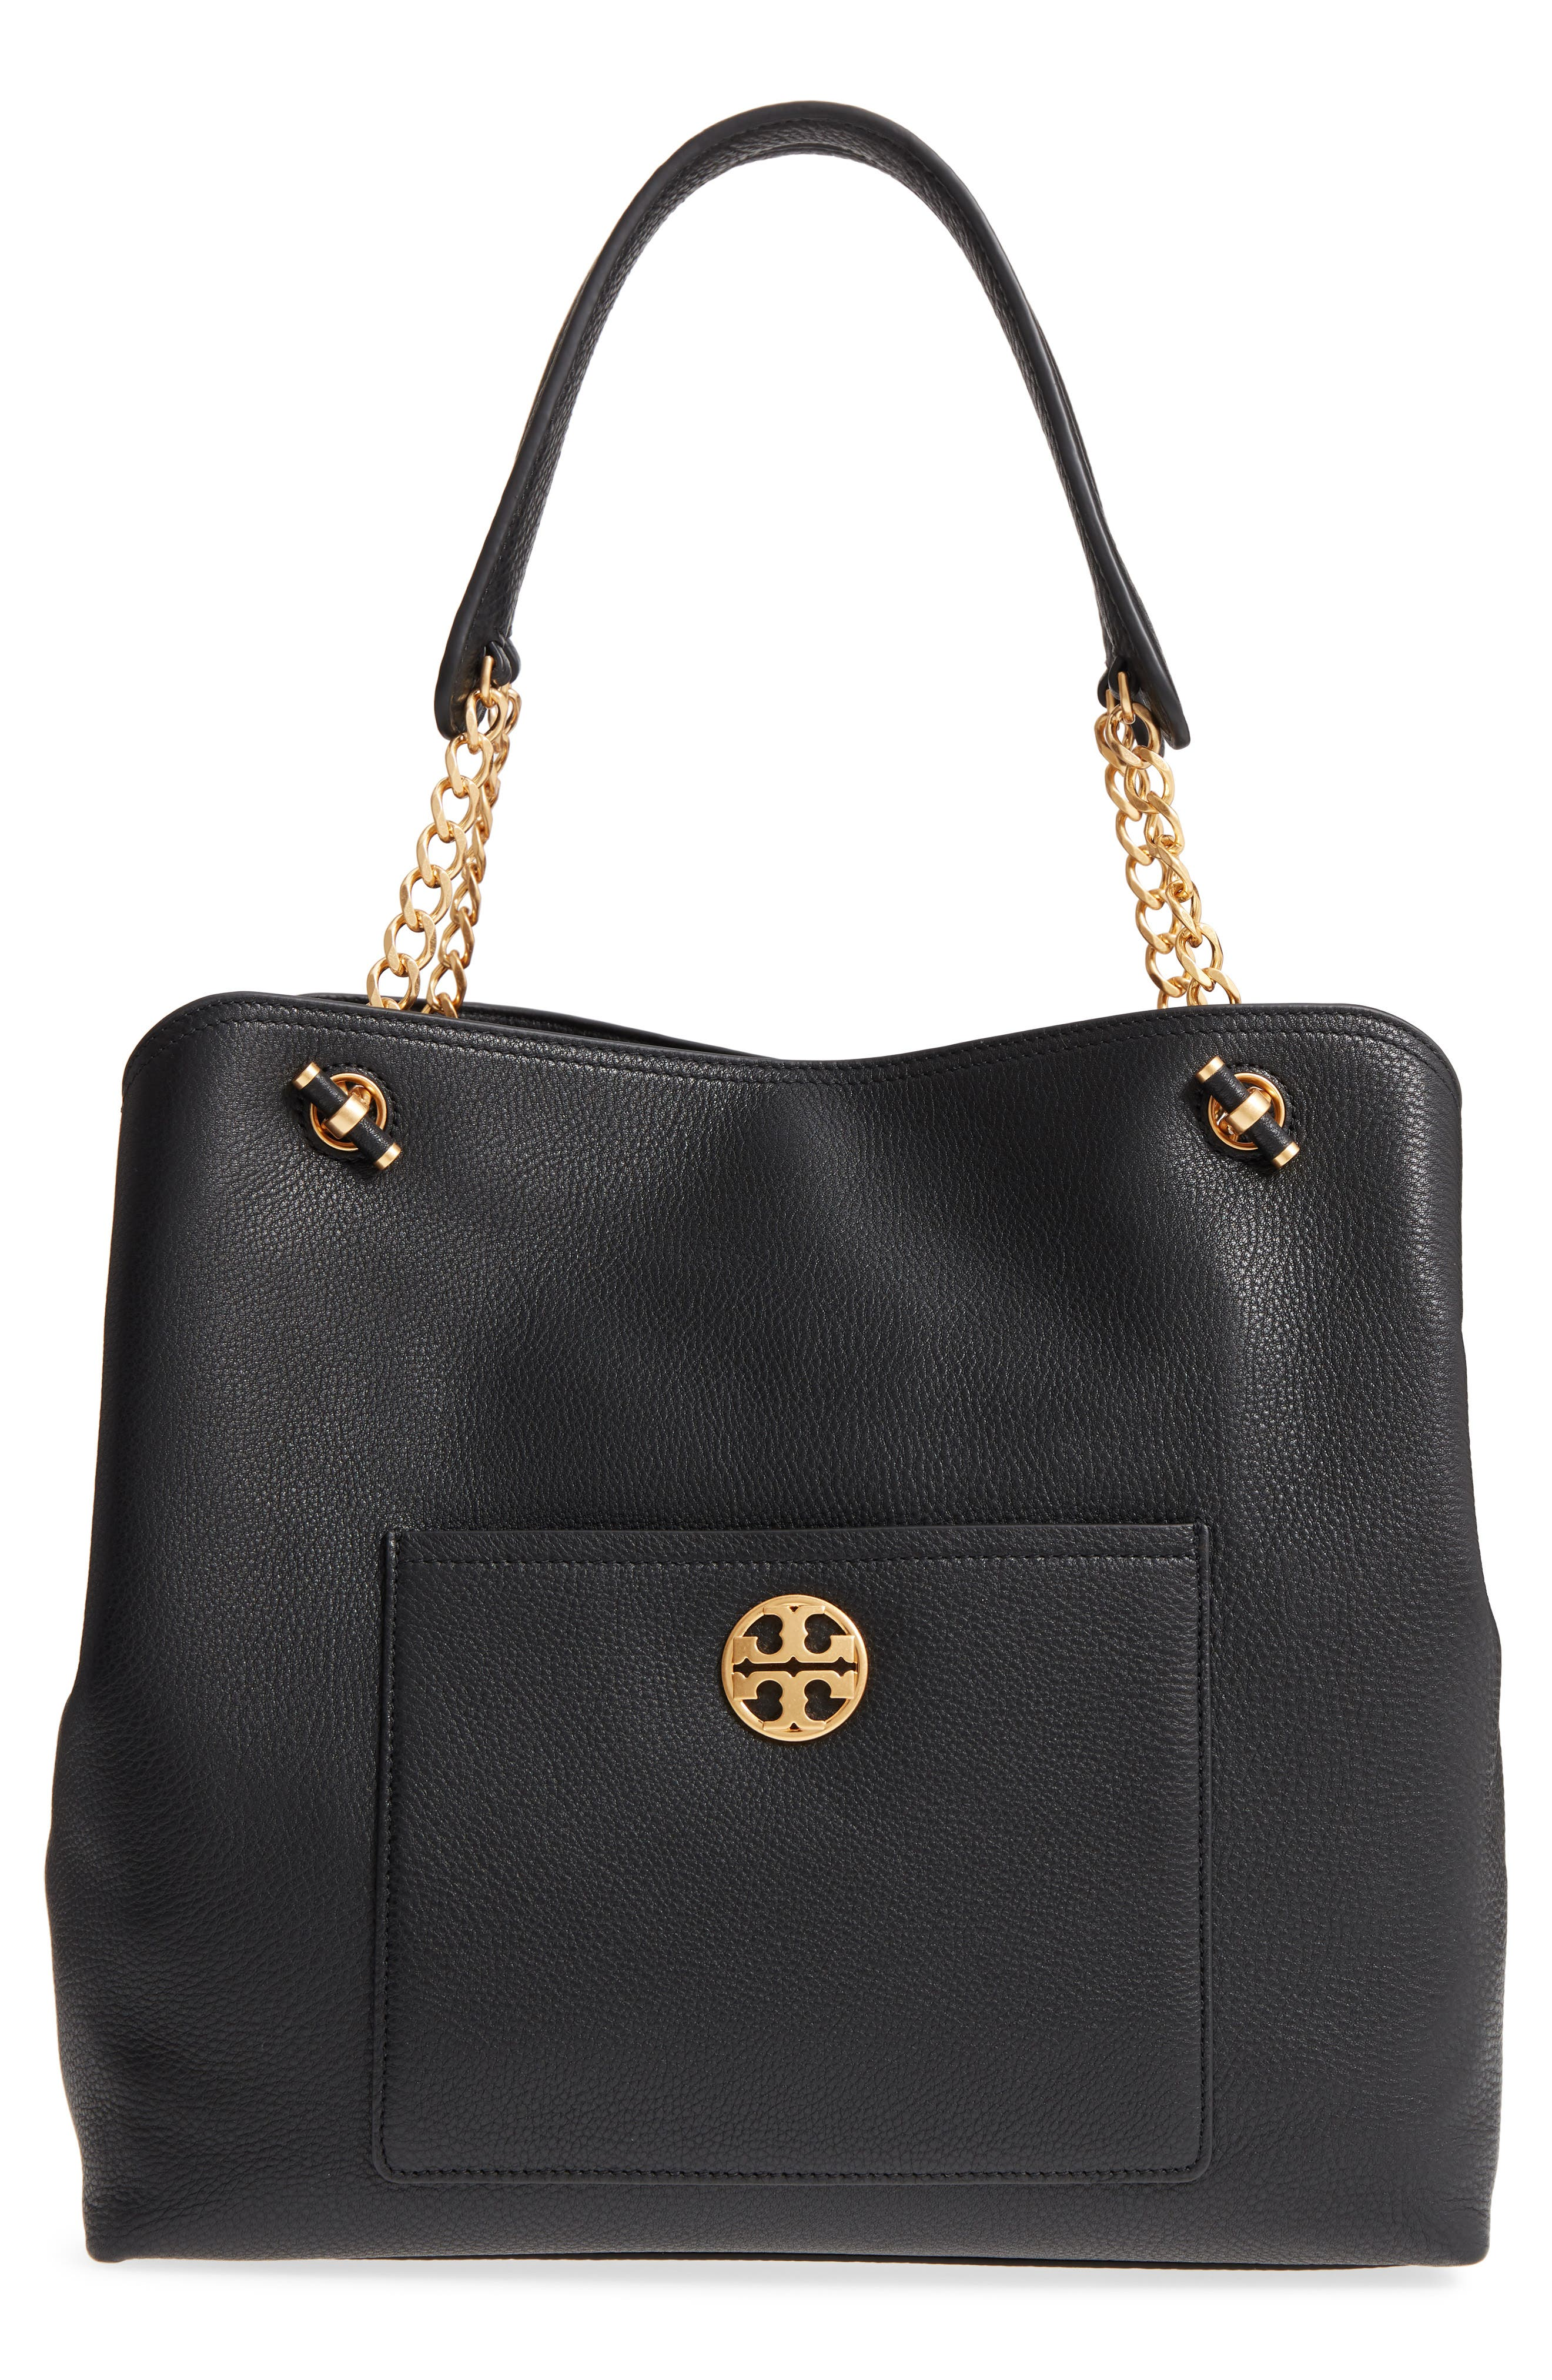 Chelsea Slouchy Leather Tote,                             Main thumbnail 1, color,                             Black Core